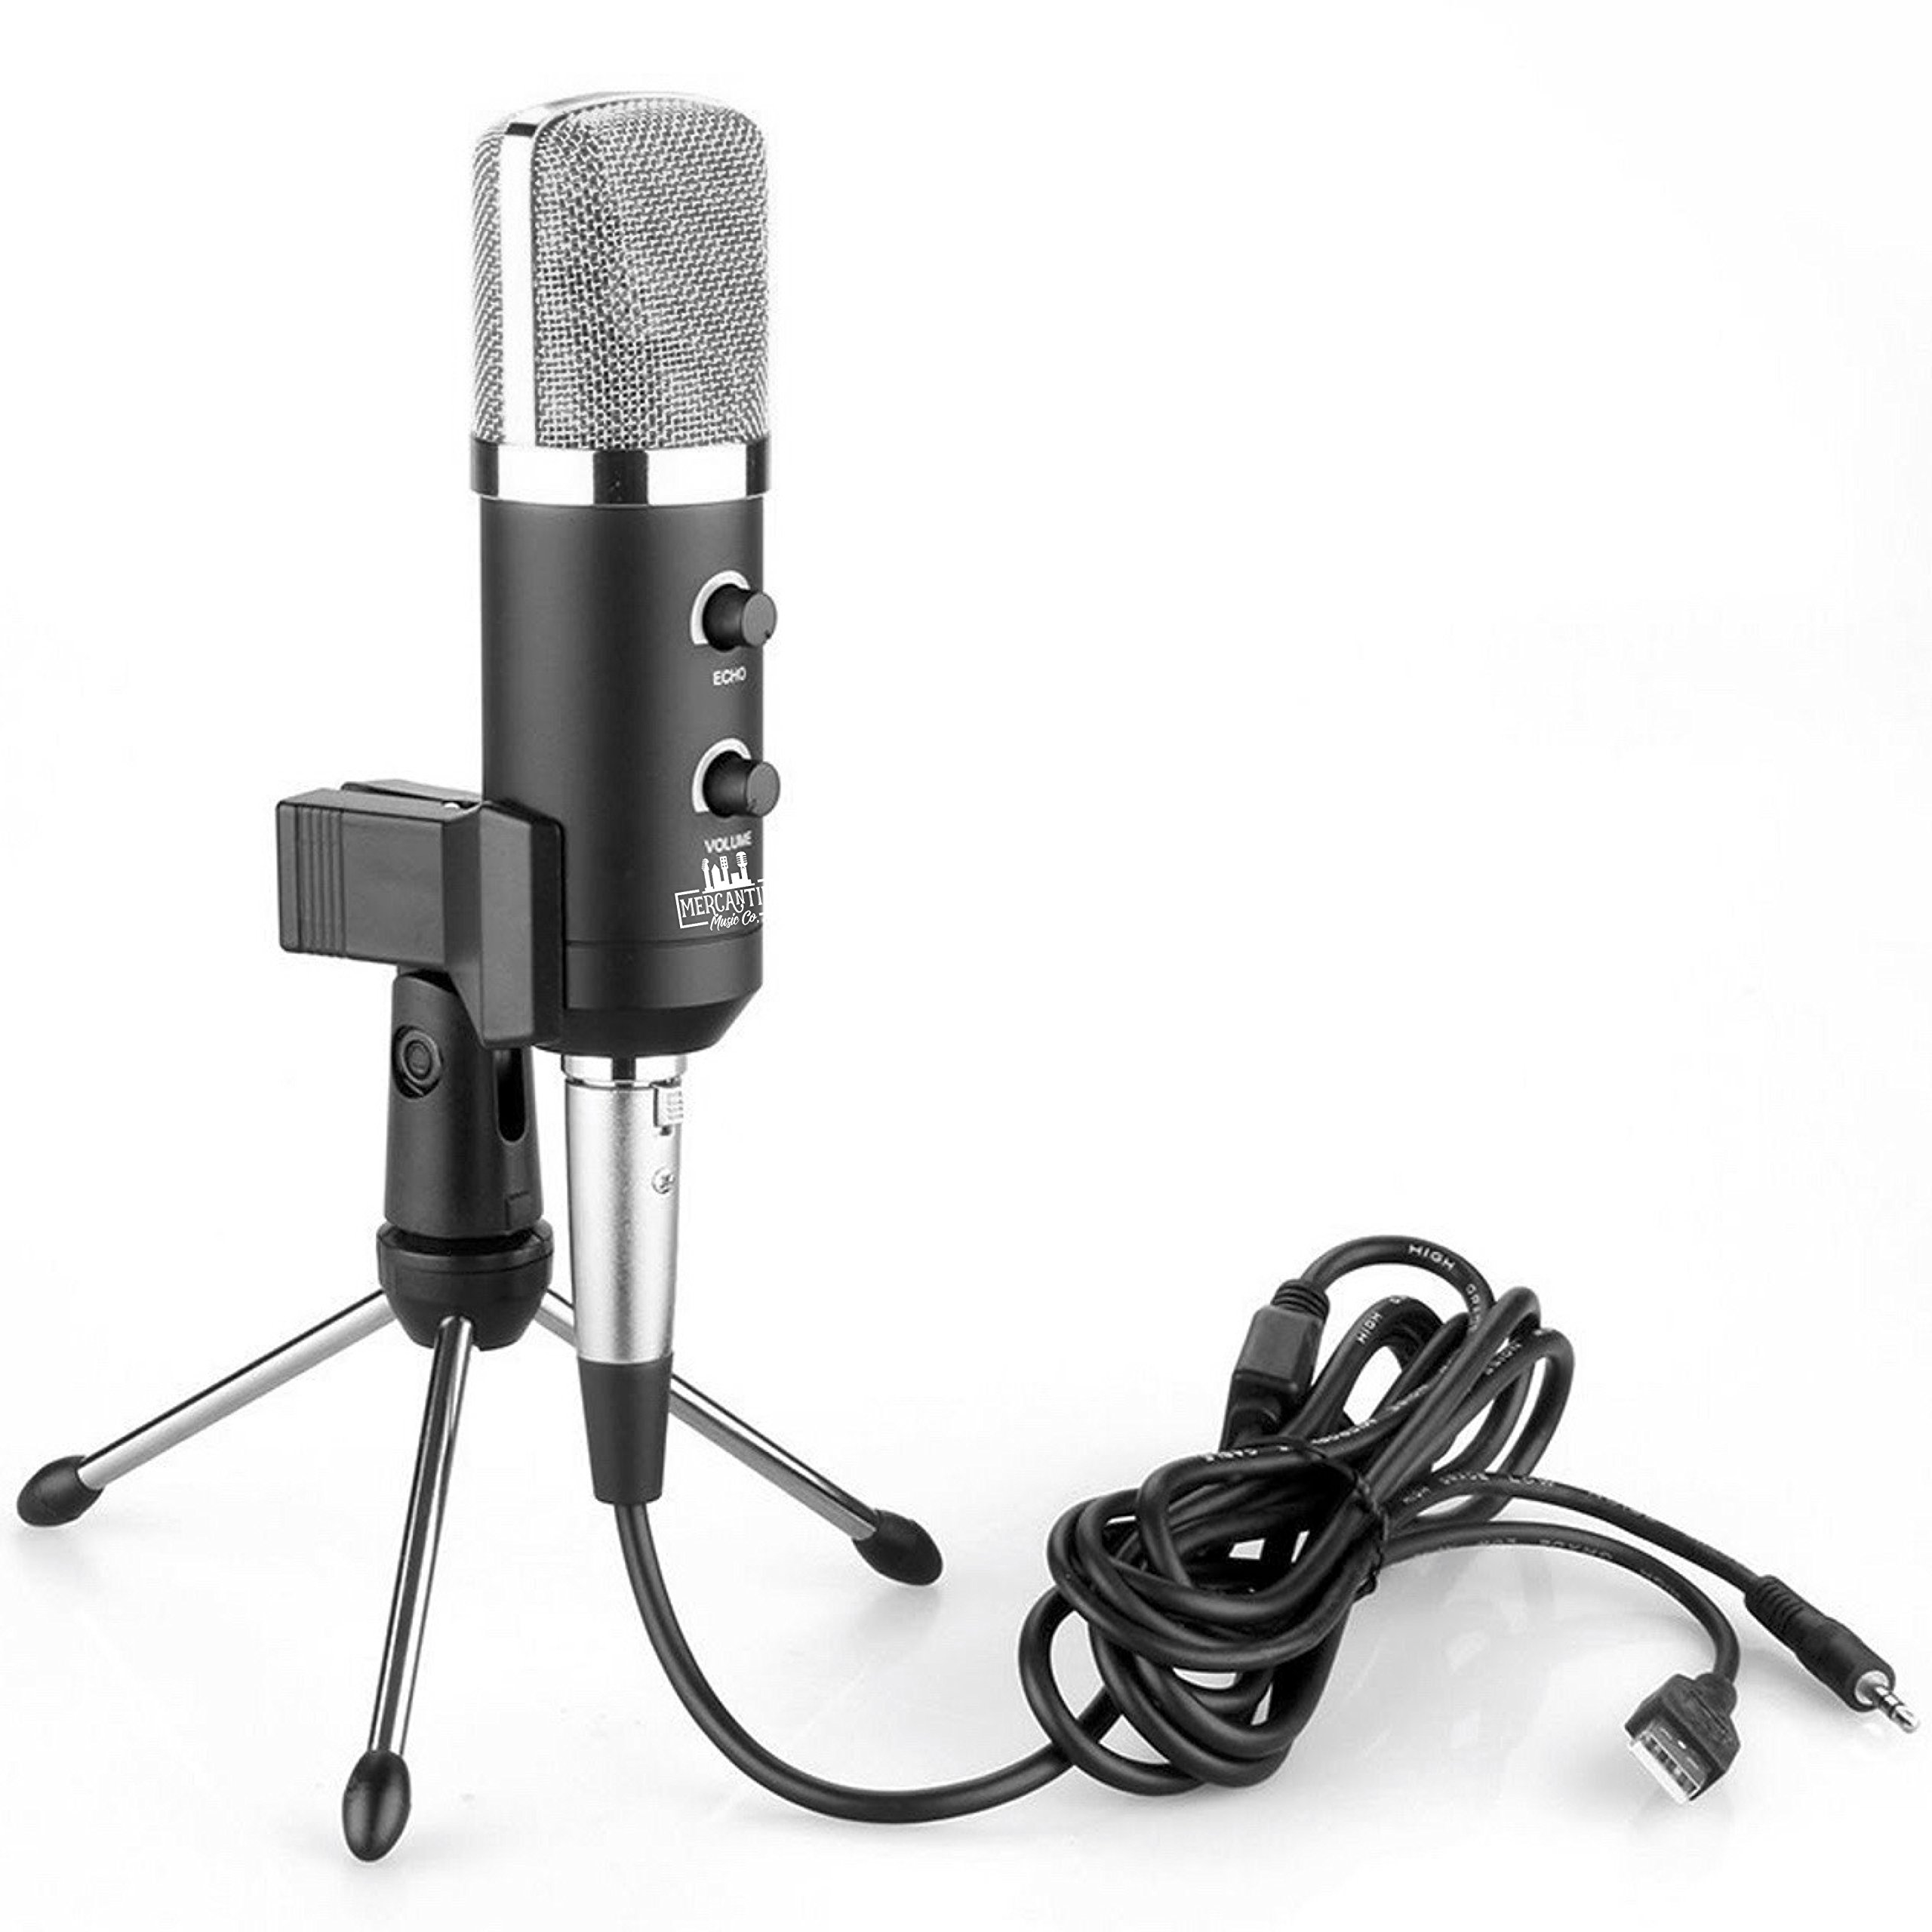 MM-412 - USB Microphone - Mercantile Music Co. - Podcast Kit - Mic Stand, Cable and Clip - Volume and Echo Control - PC and Mac Compatible - Quality Home Recording of Vocals and Instruments